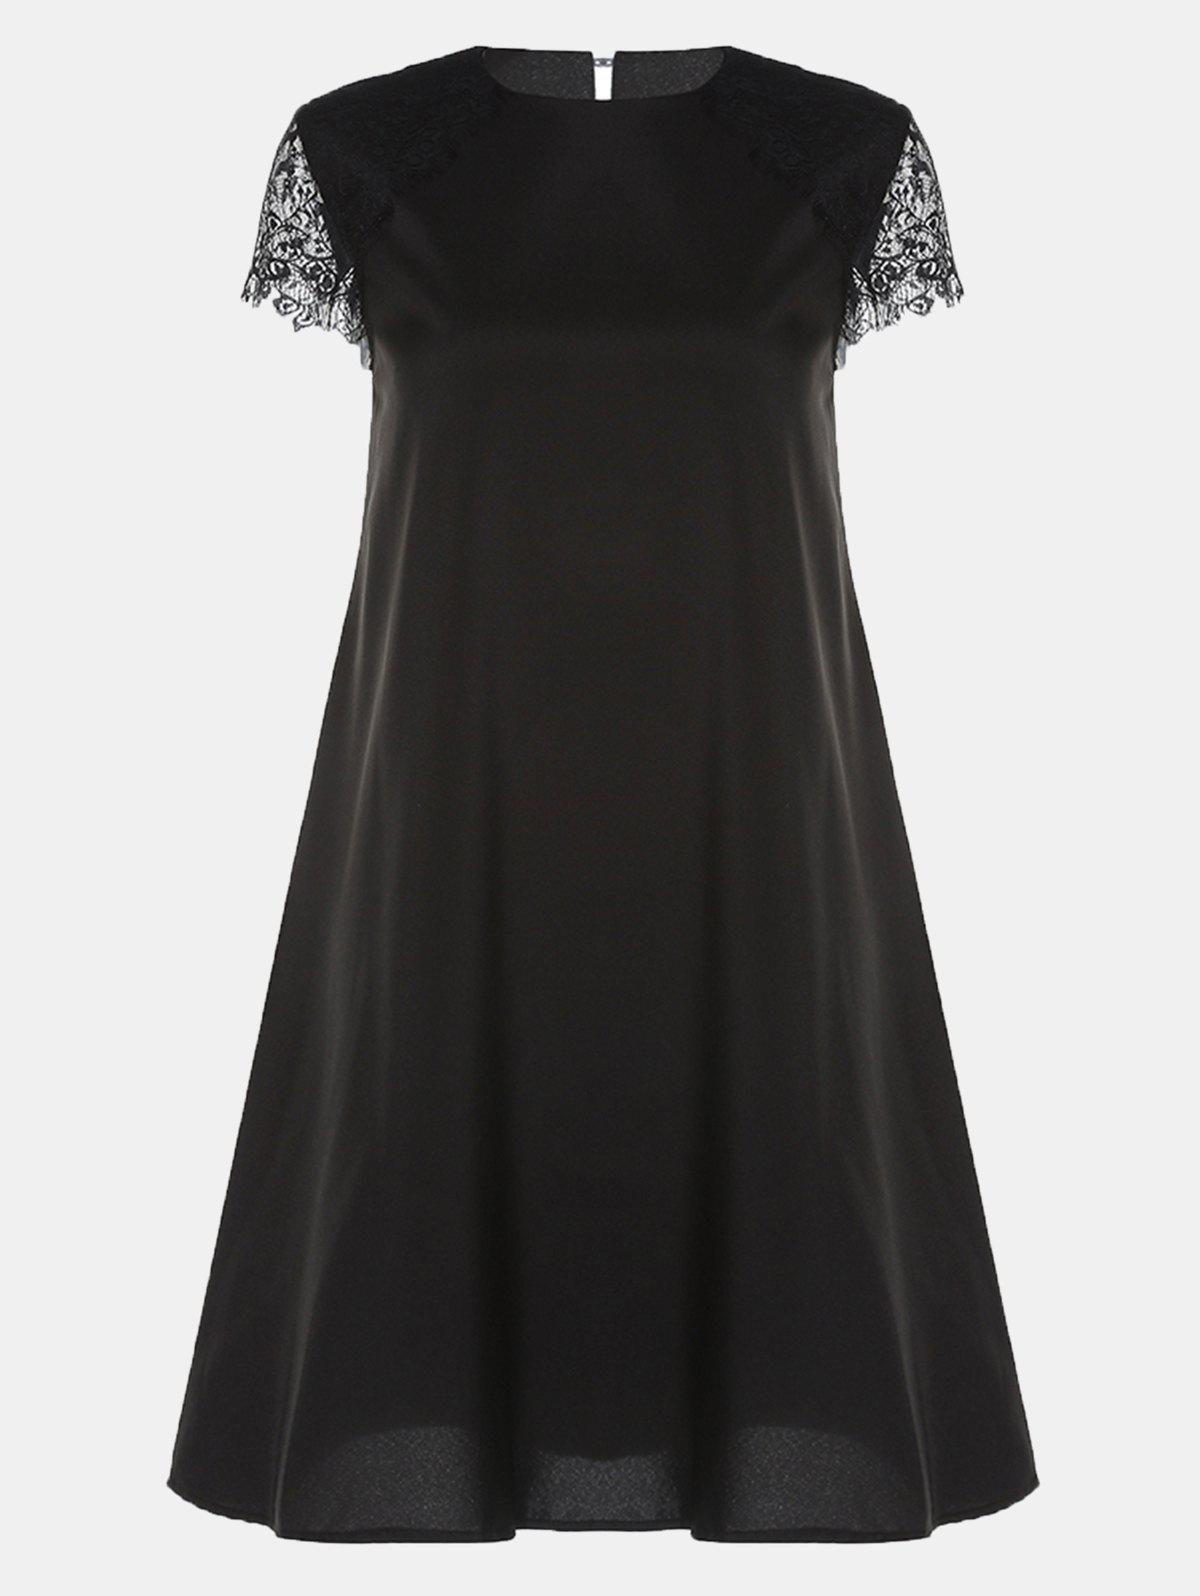 Store Round Collar Lace Short Sleeve Loose A-line Dress